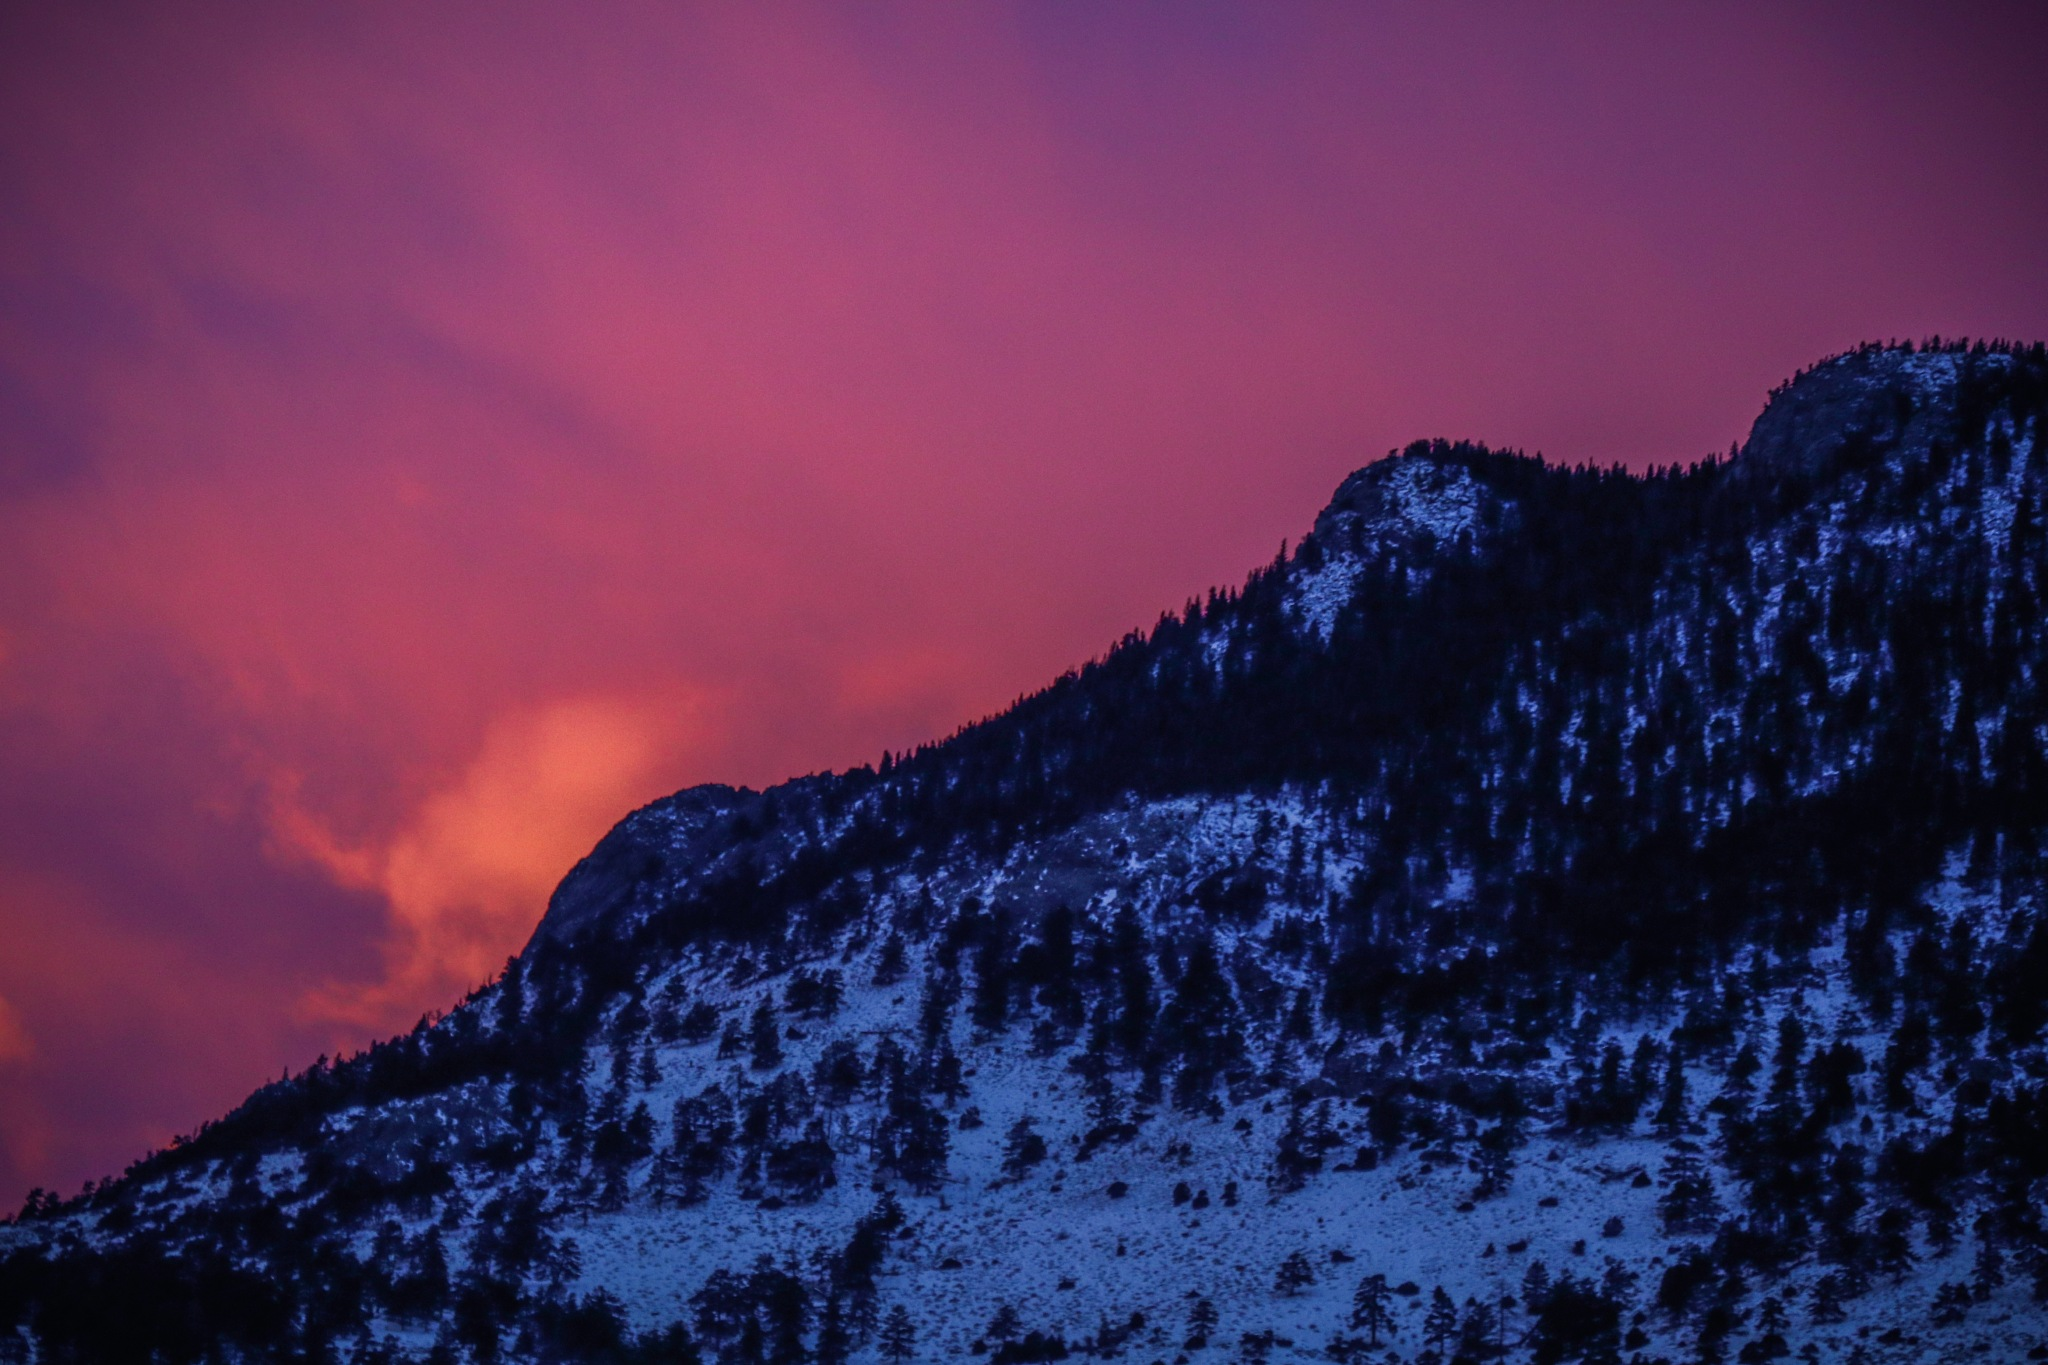 Fire on the mountain by Mark Hootman